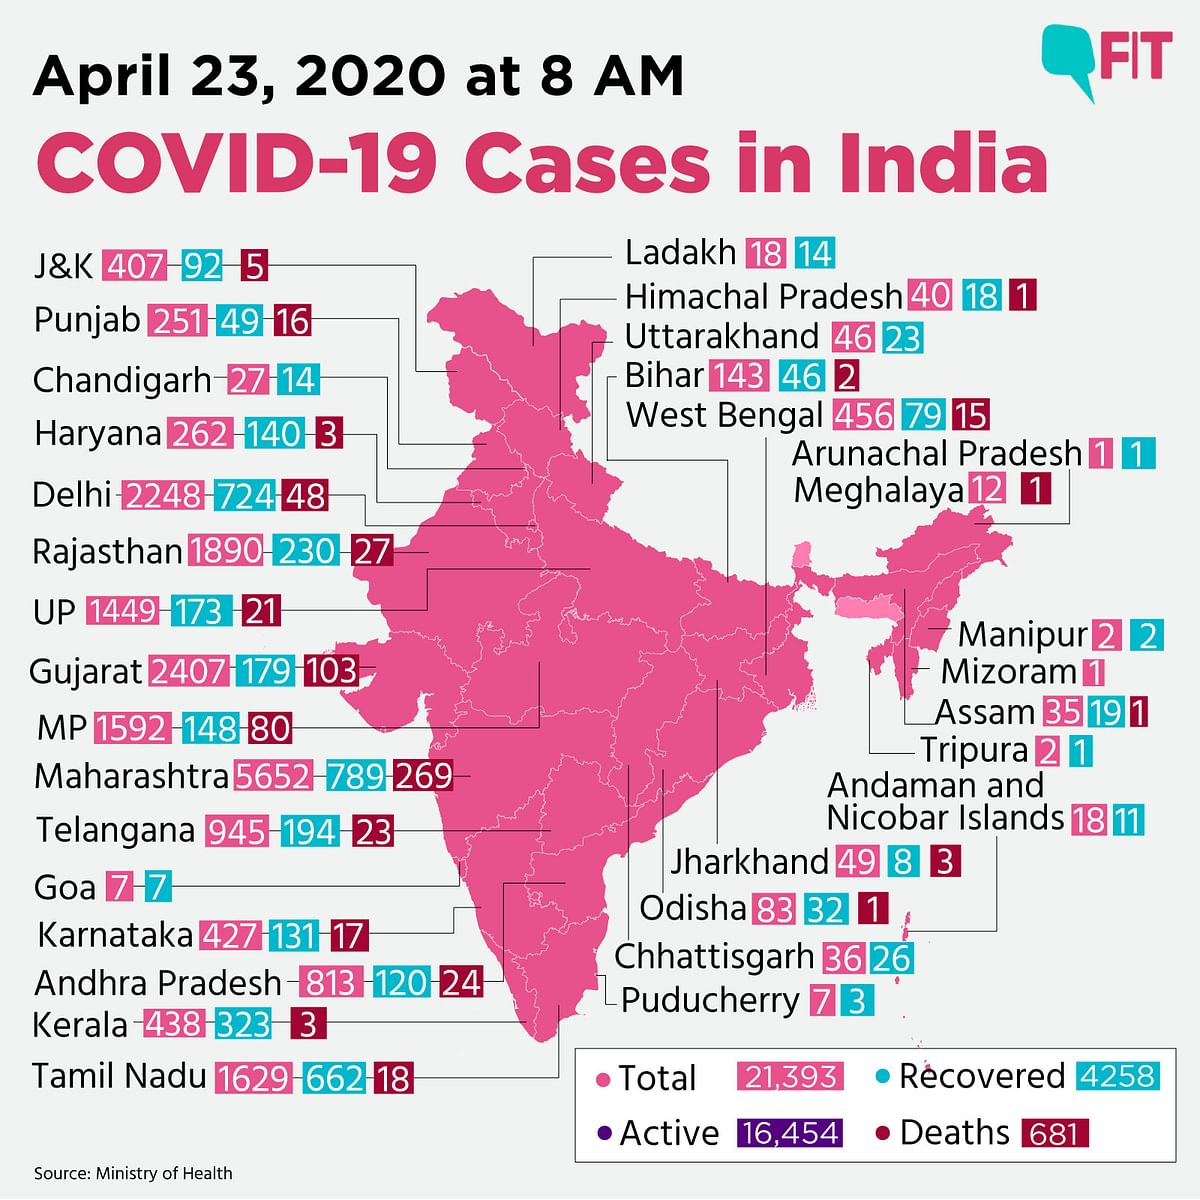 COVID-19 India: Death Toll Rises to 681; Cases Climb to 21,393